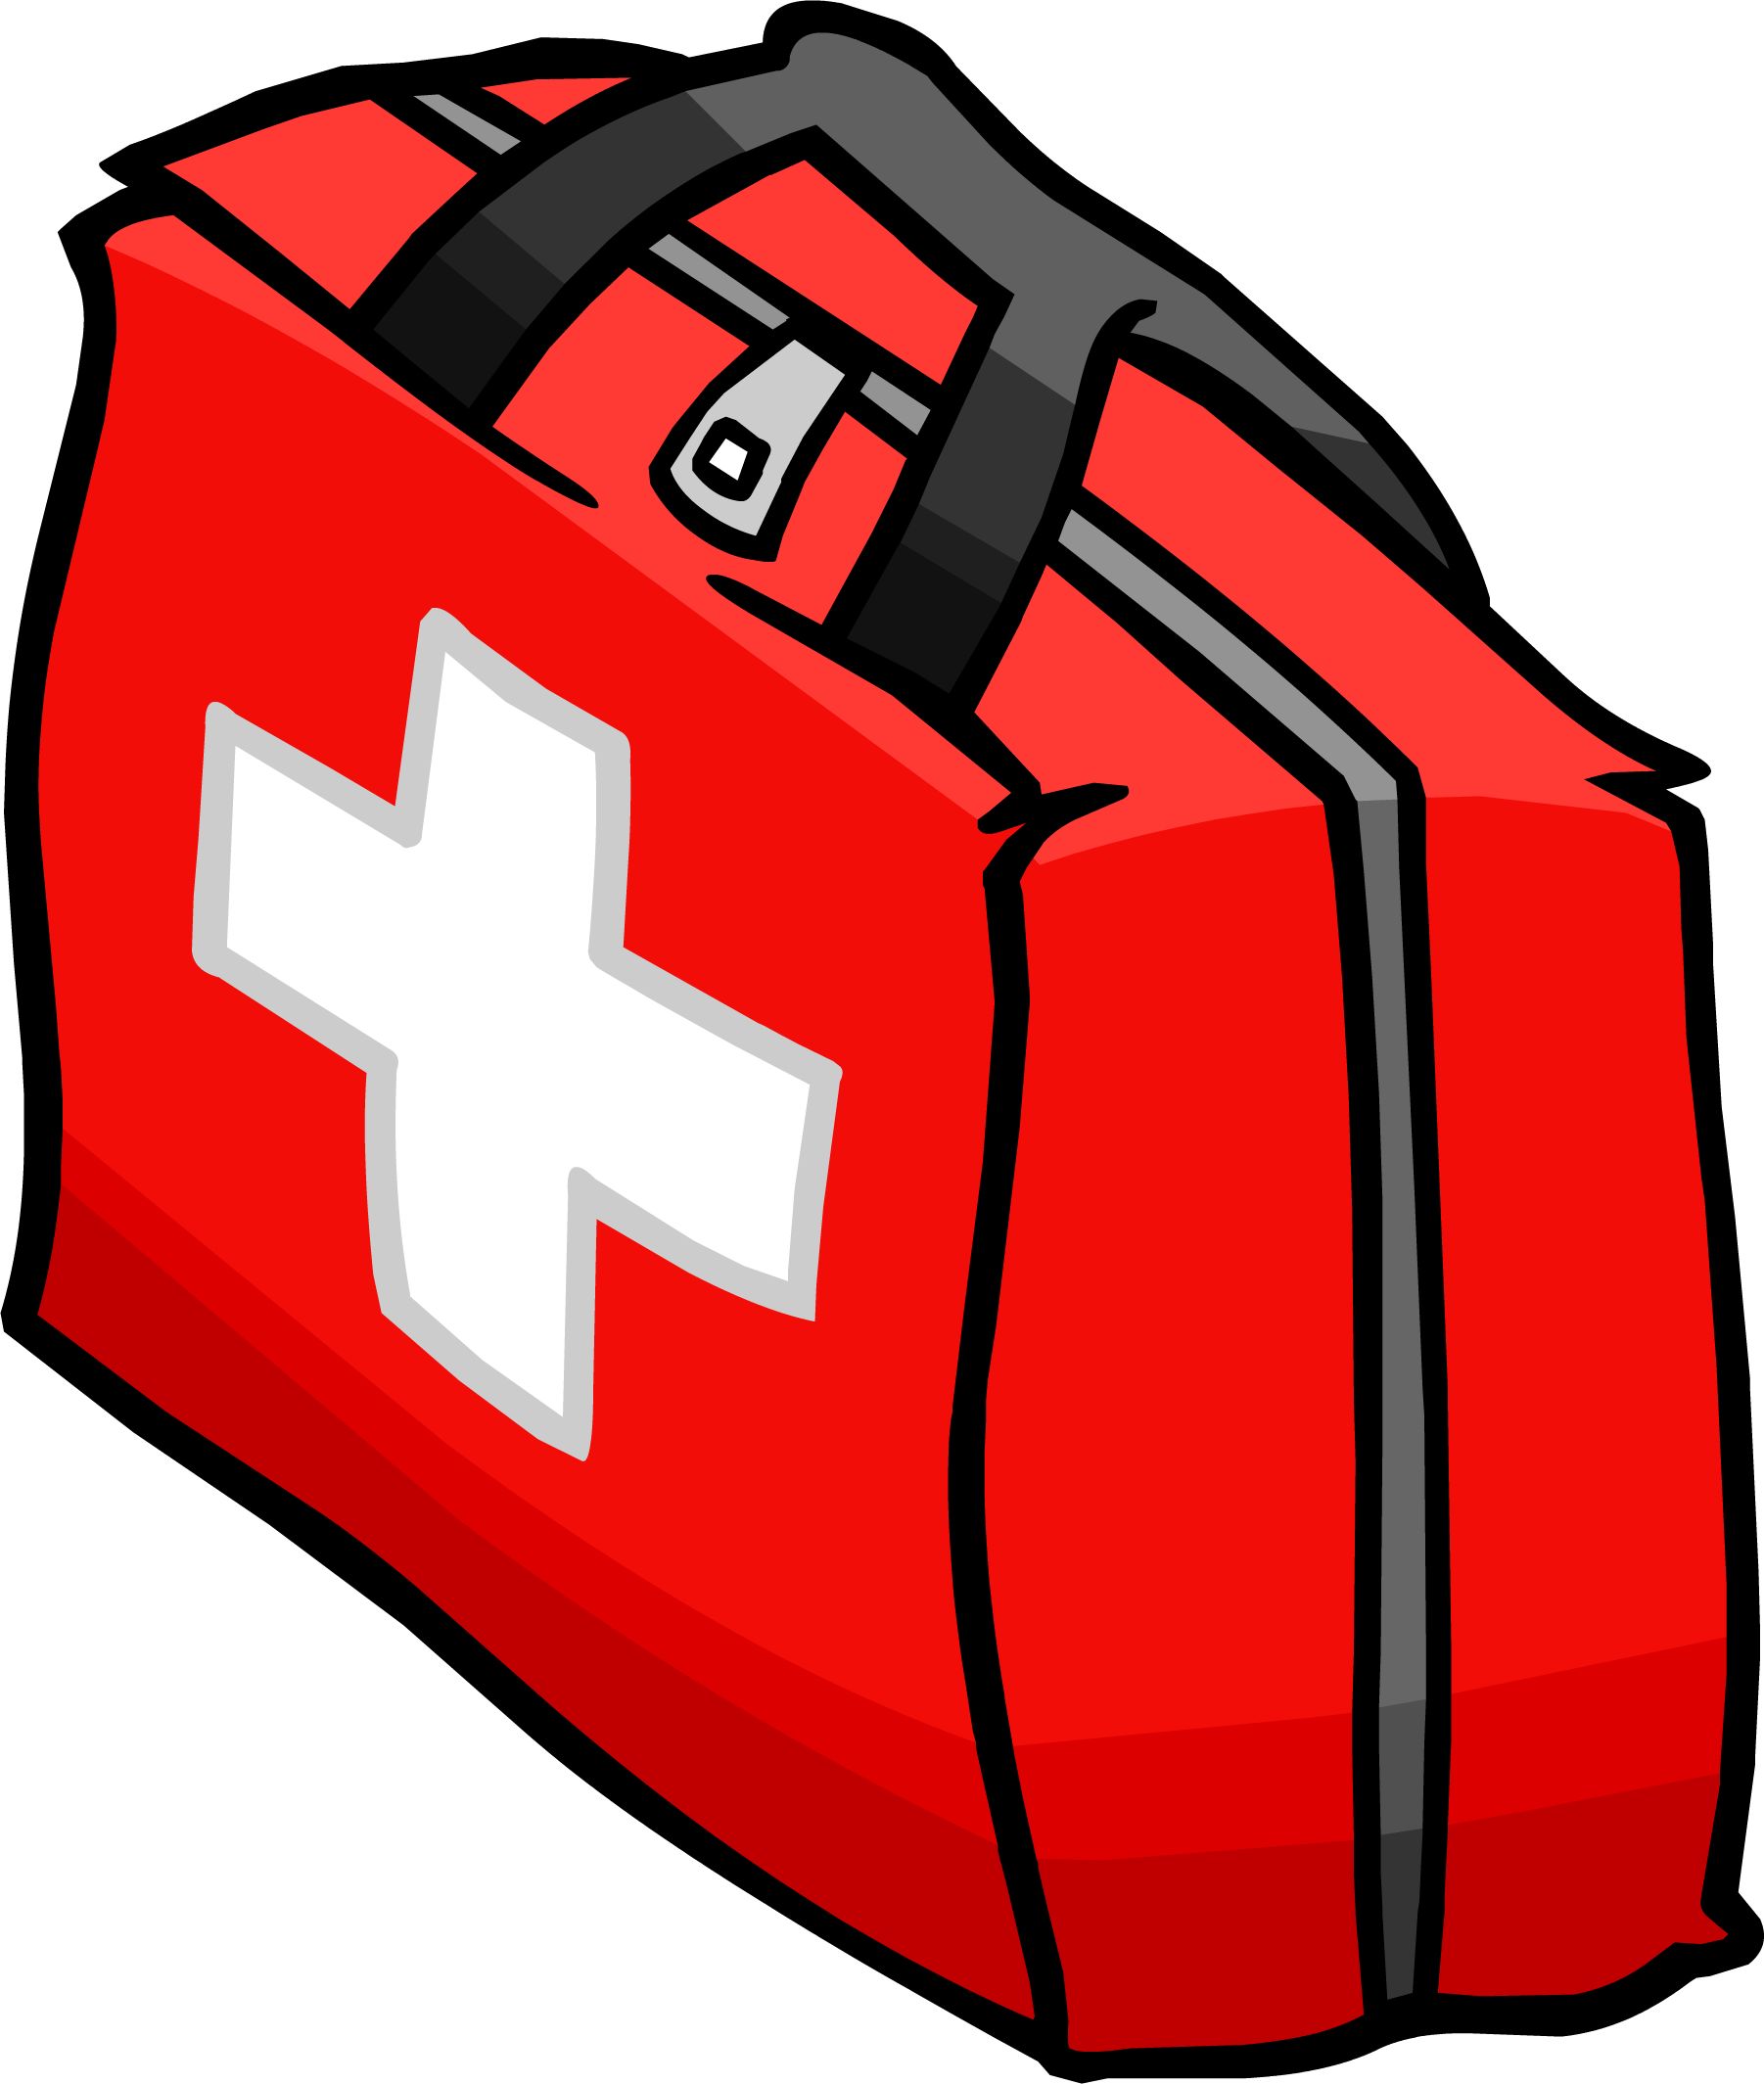 Briefcase clipart cartoon. First aid clip art